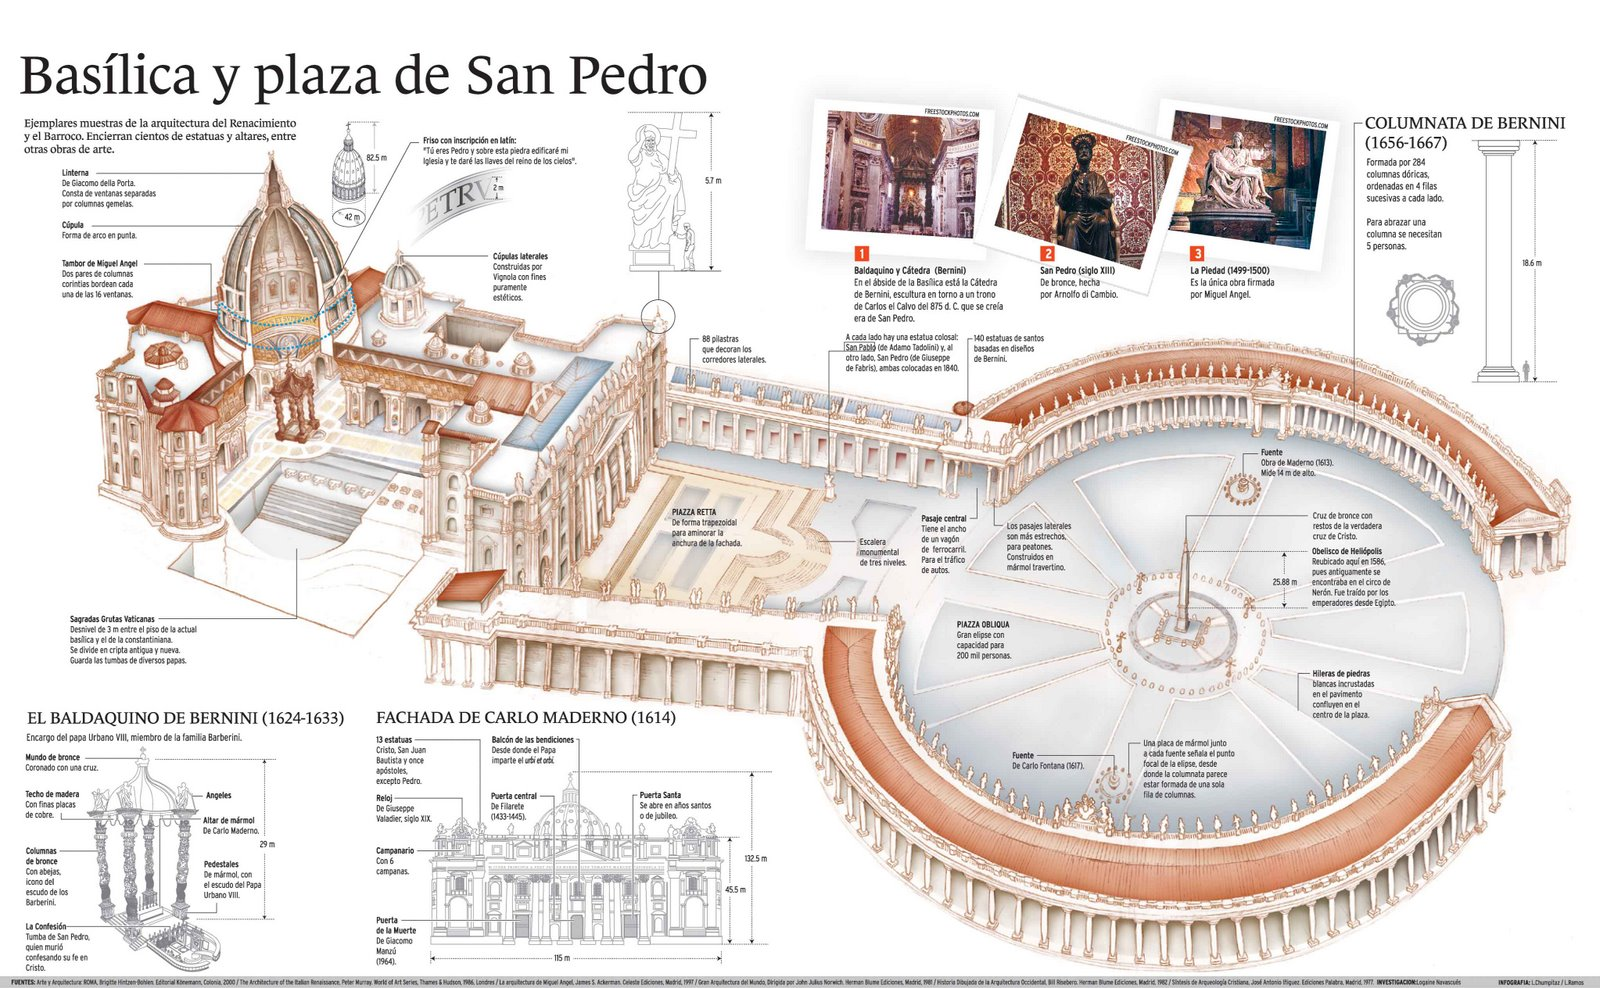 Luis chumpitaz leadership in editorial sections for Infografia arquitectura